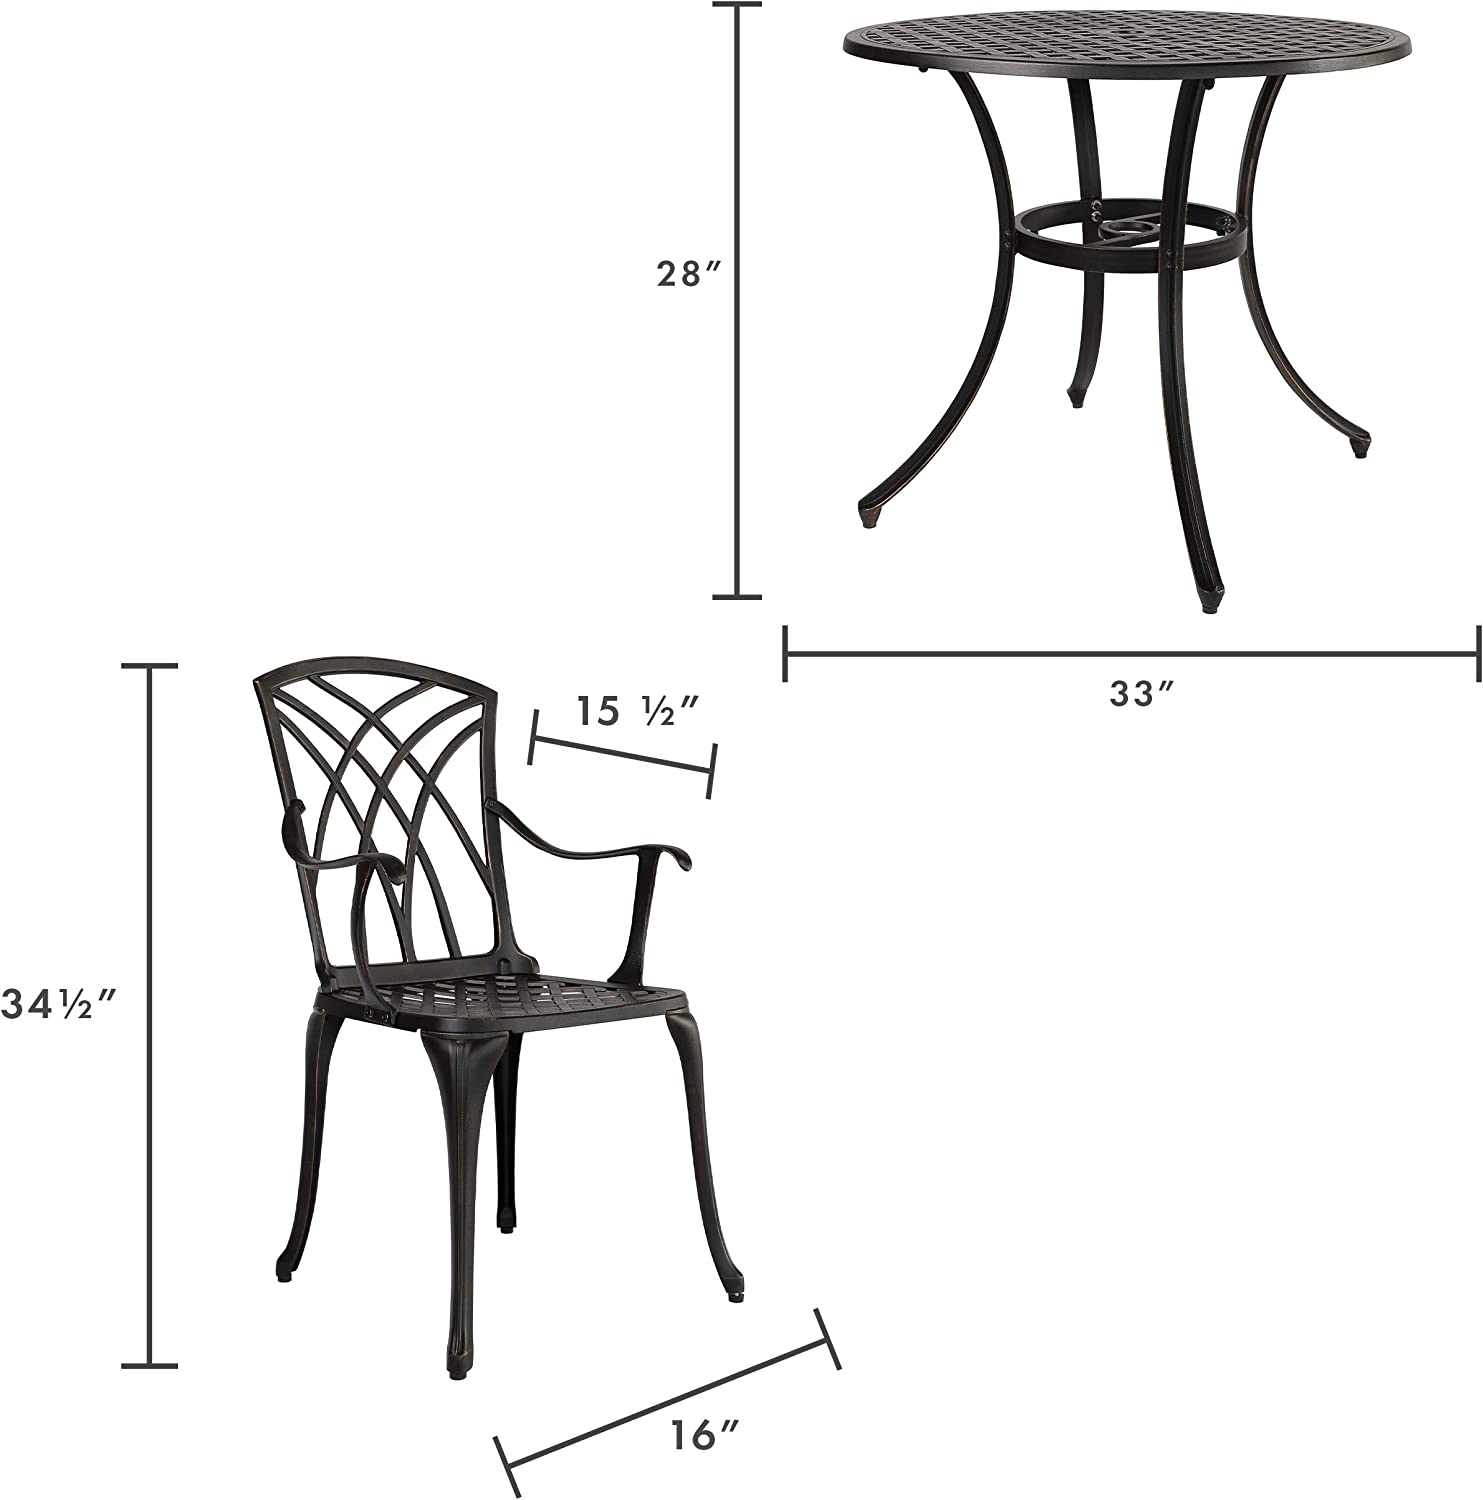 Drop Leaf Cast Aluminum Kinger Home Outdoor Dining Chairs Set of 4 Antique Brown Weatherproof and Windproof Patio Furniture Metal Patio Dining Chair